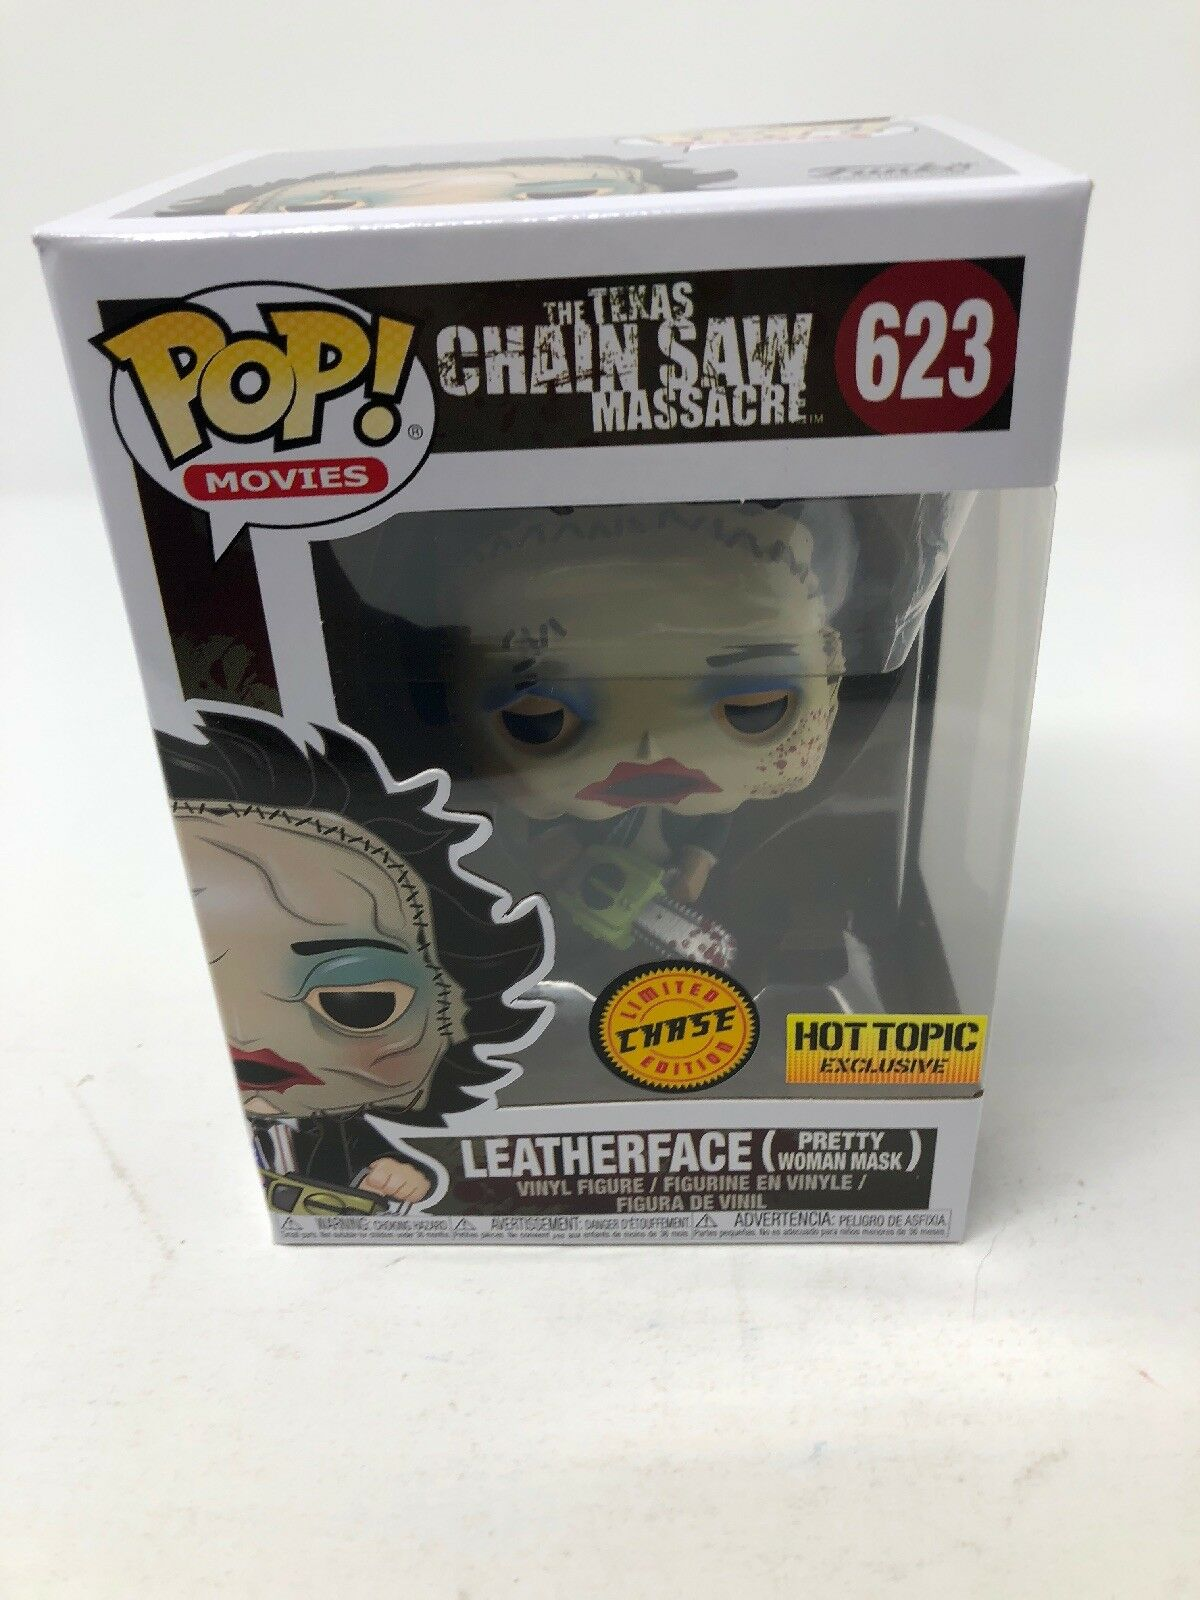 Funko Pop Leatherface Hot Topic Chase exclusivo  623 Texas Chainsaw Massacre